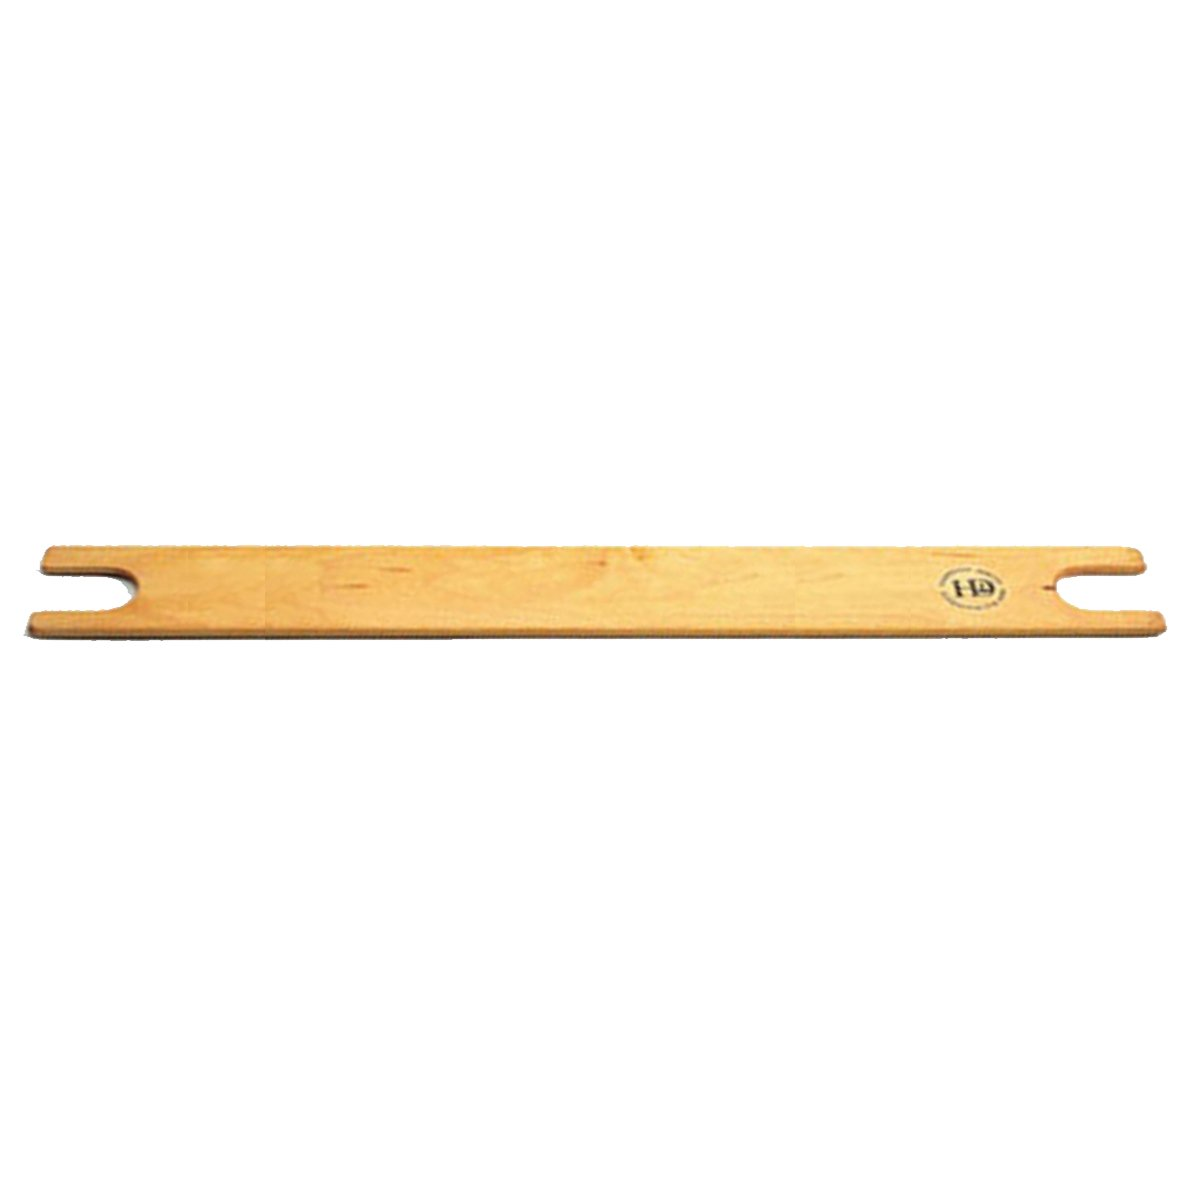 2 Flat Wooden Stick Shuttles - 16 inch - by Harrisville Designs 4336905907